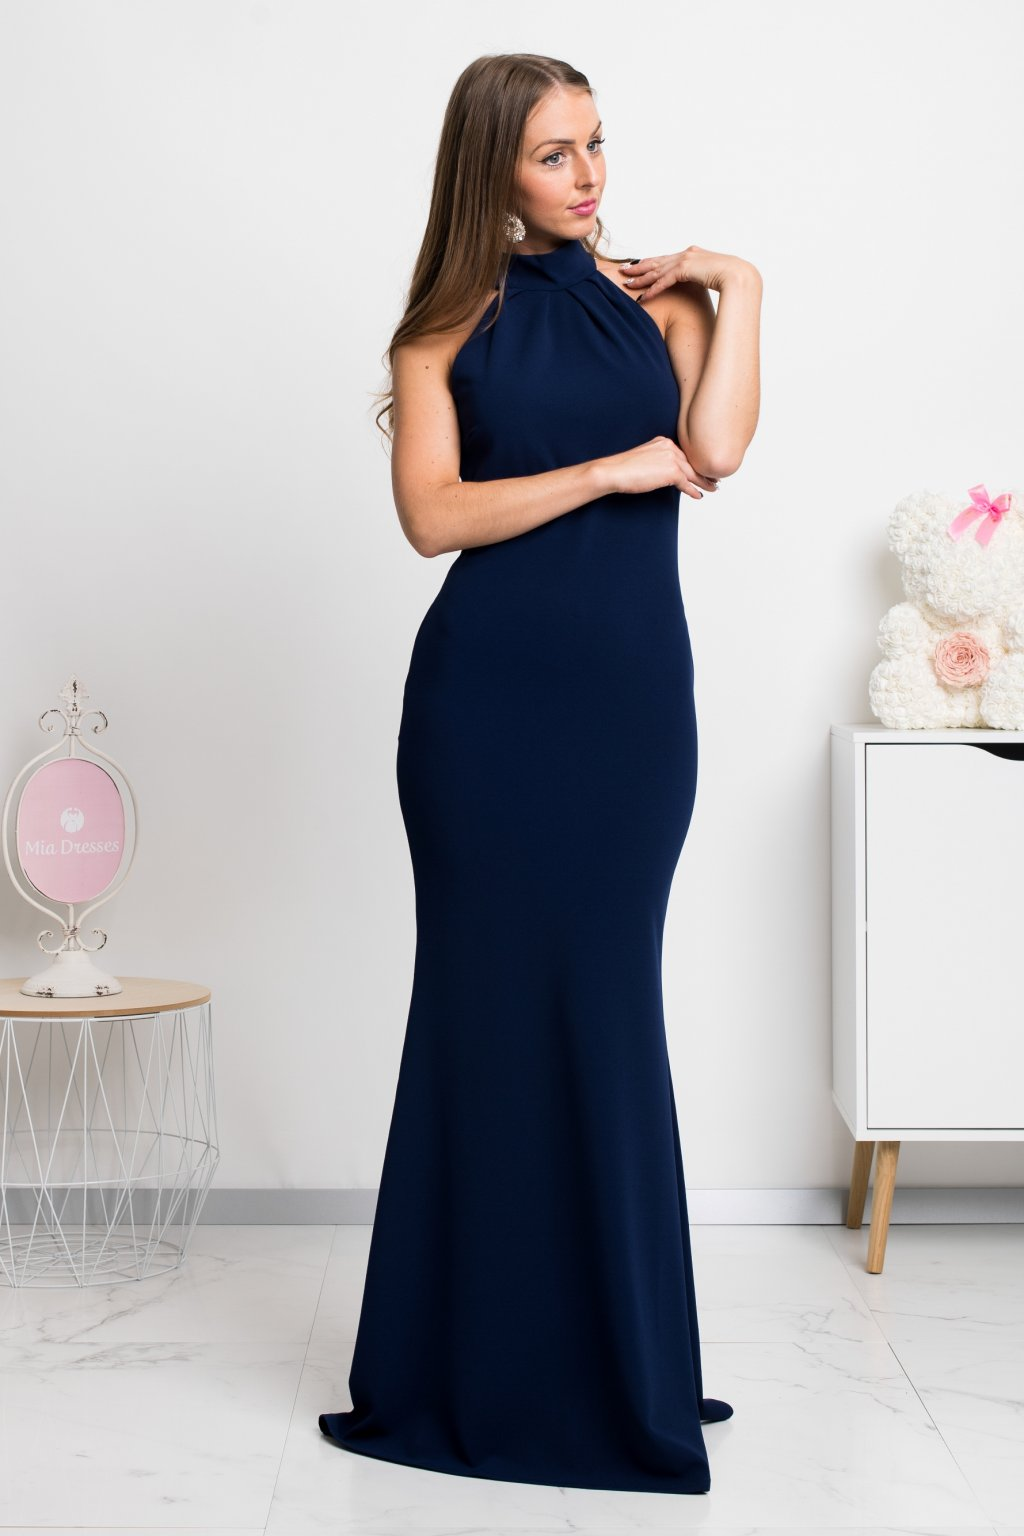 Dark blue backless formal dress